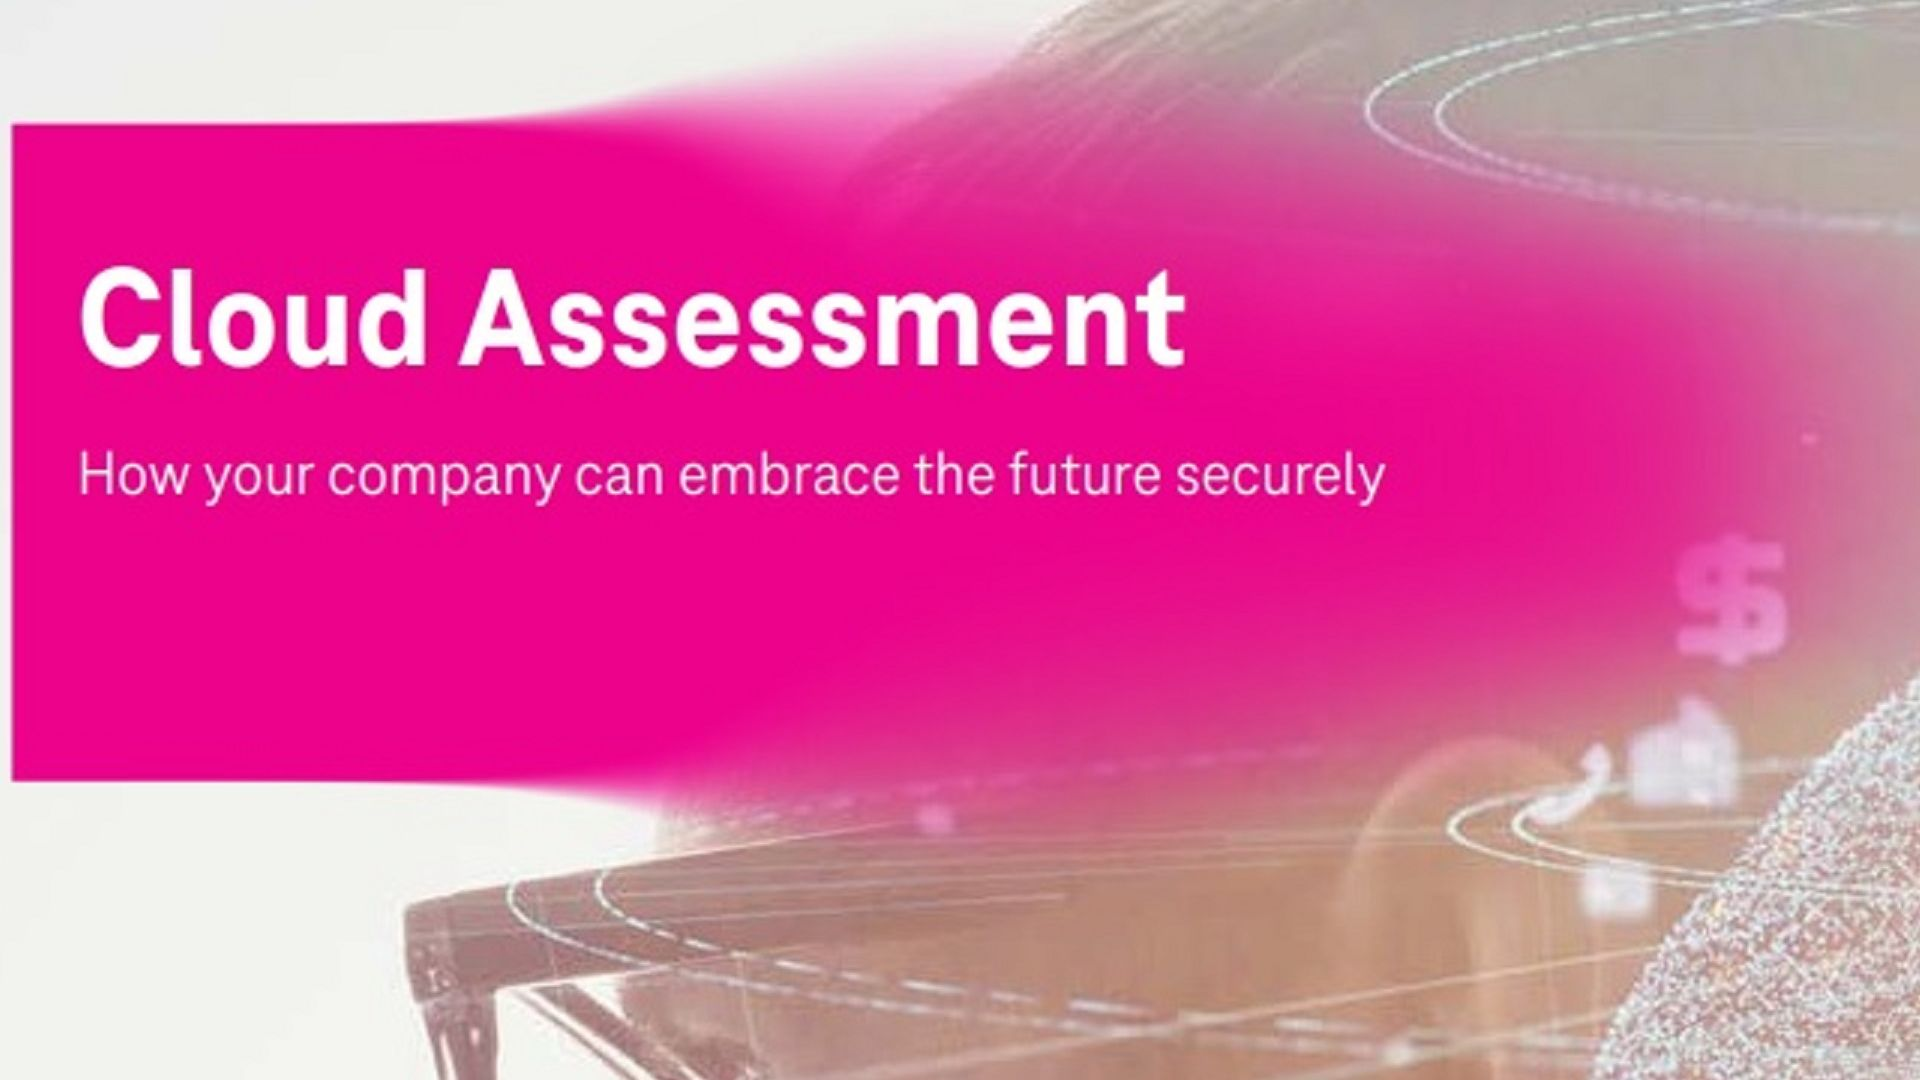 Cloud Assessment  T-Systems